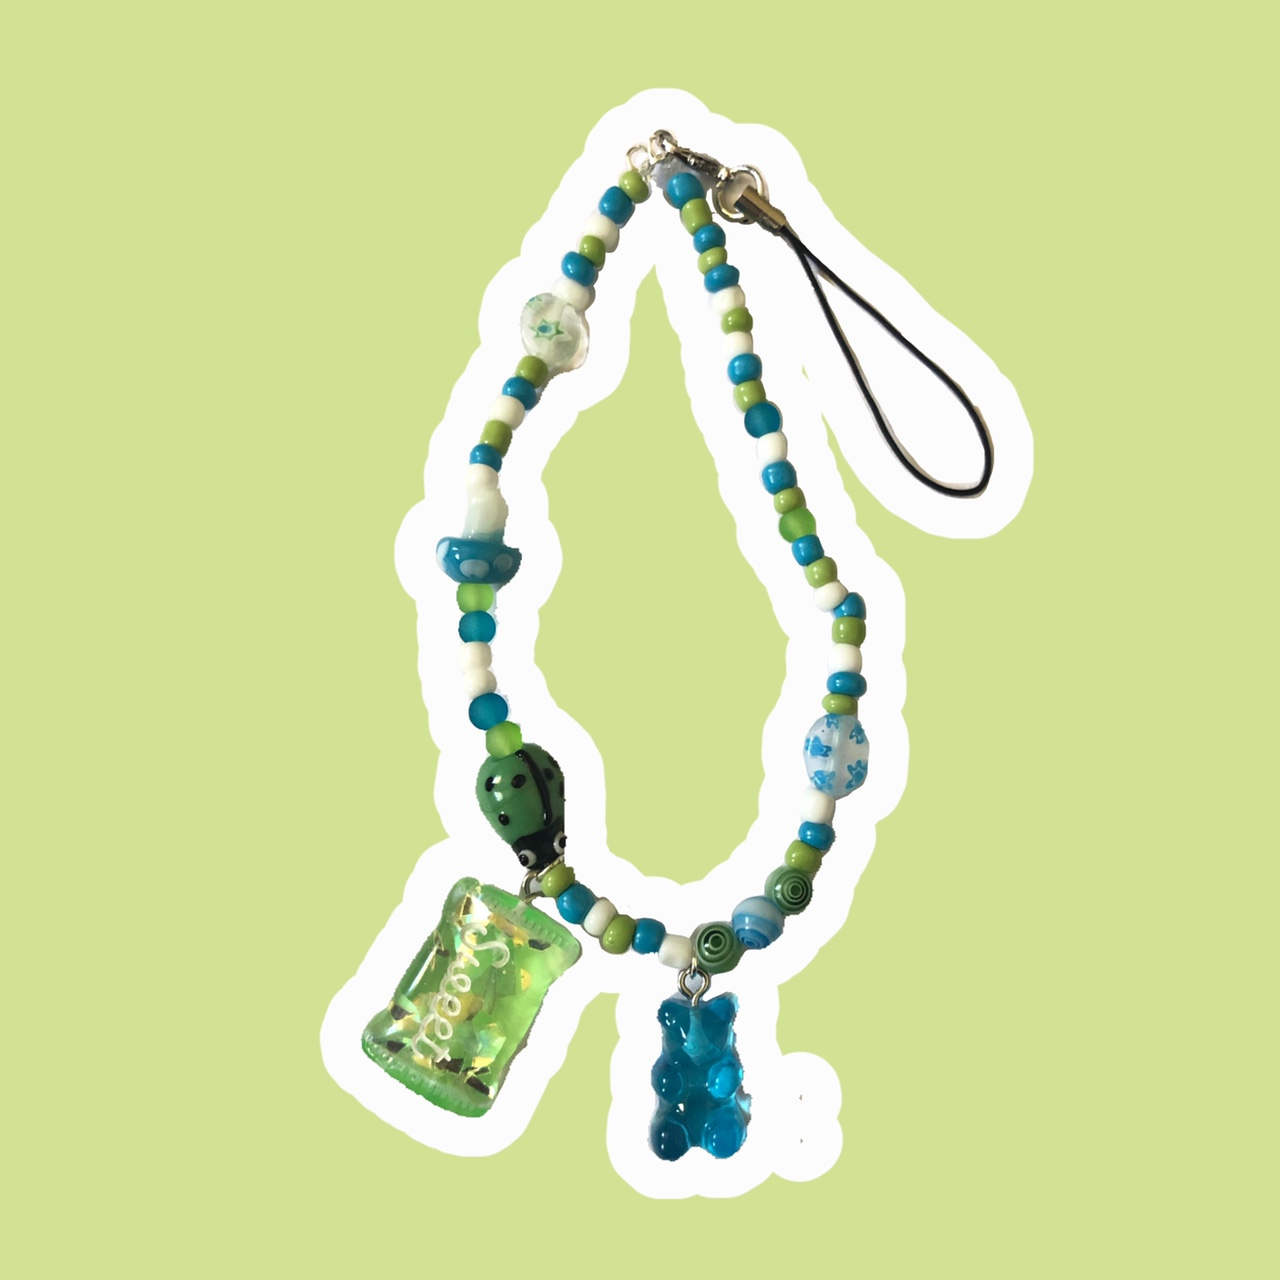 Product Image 1 - 😏 Blue and green phone strap